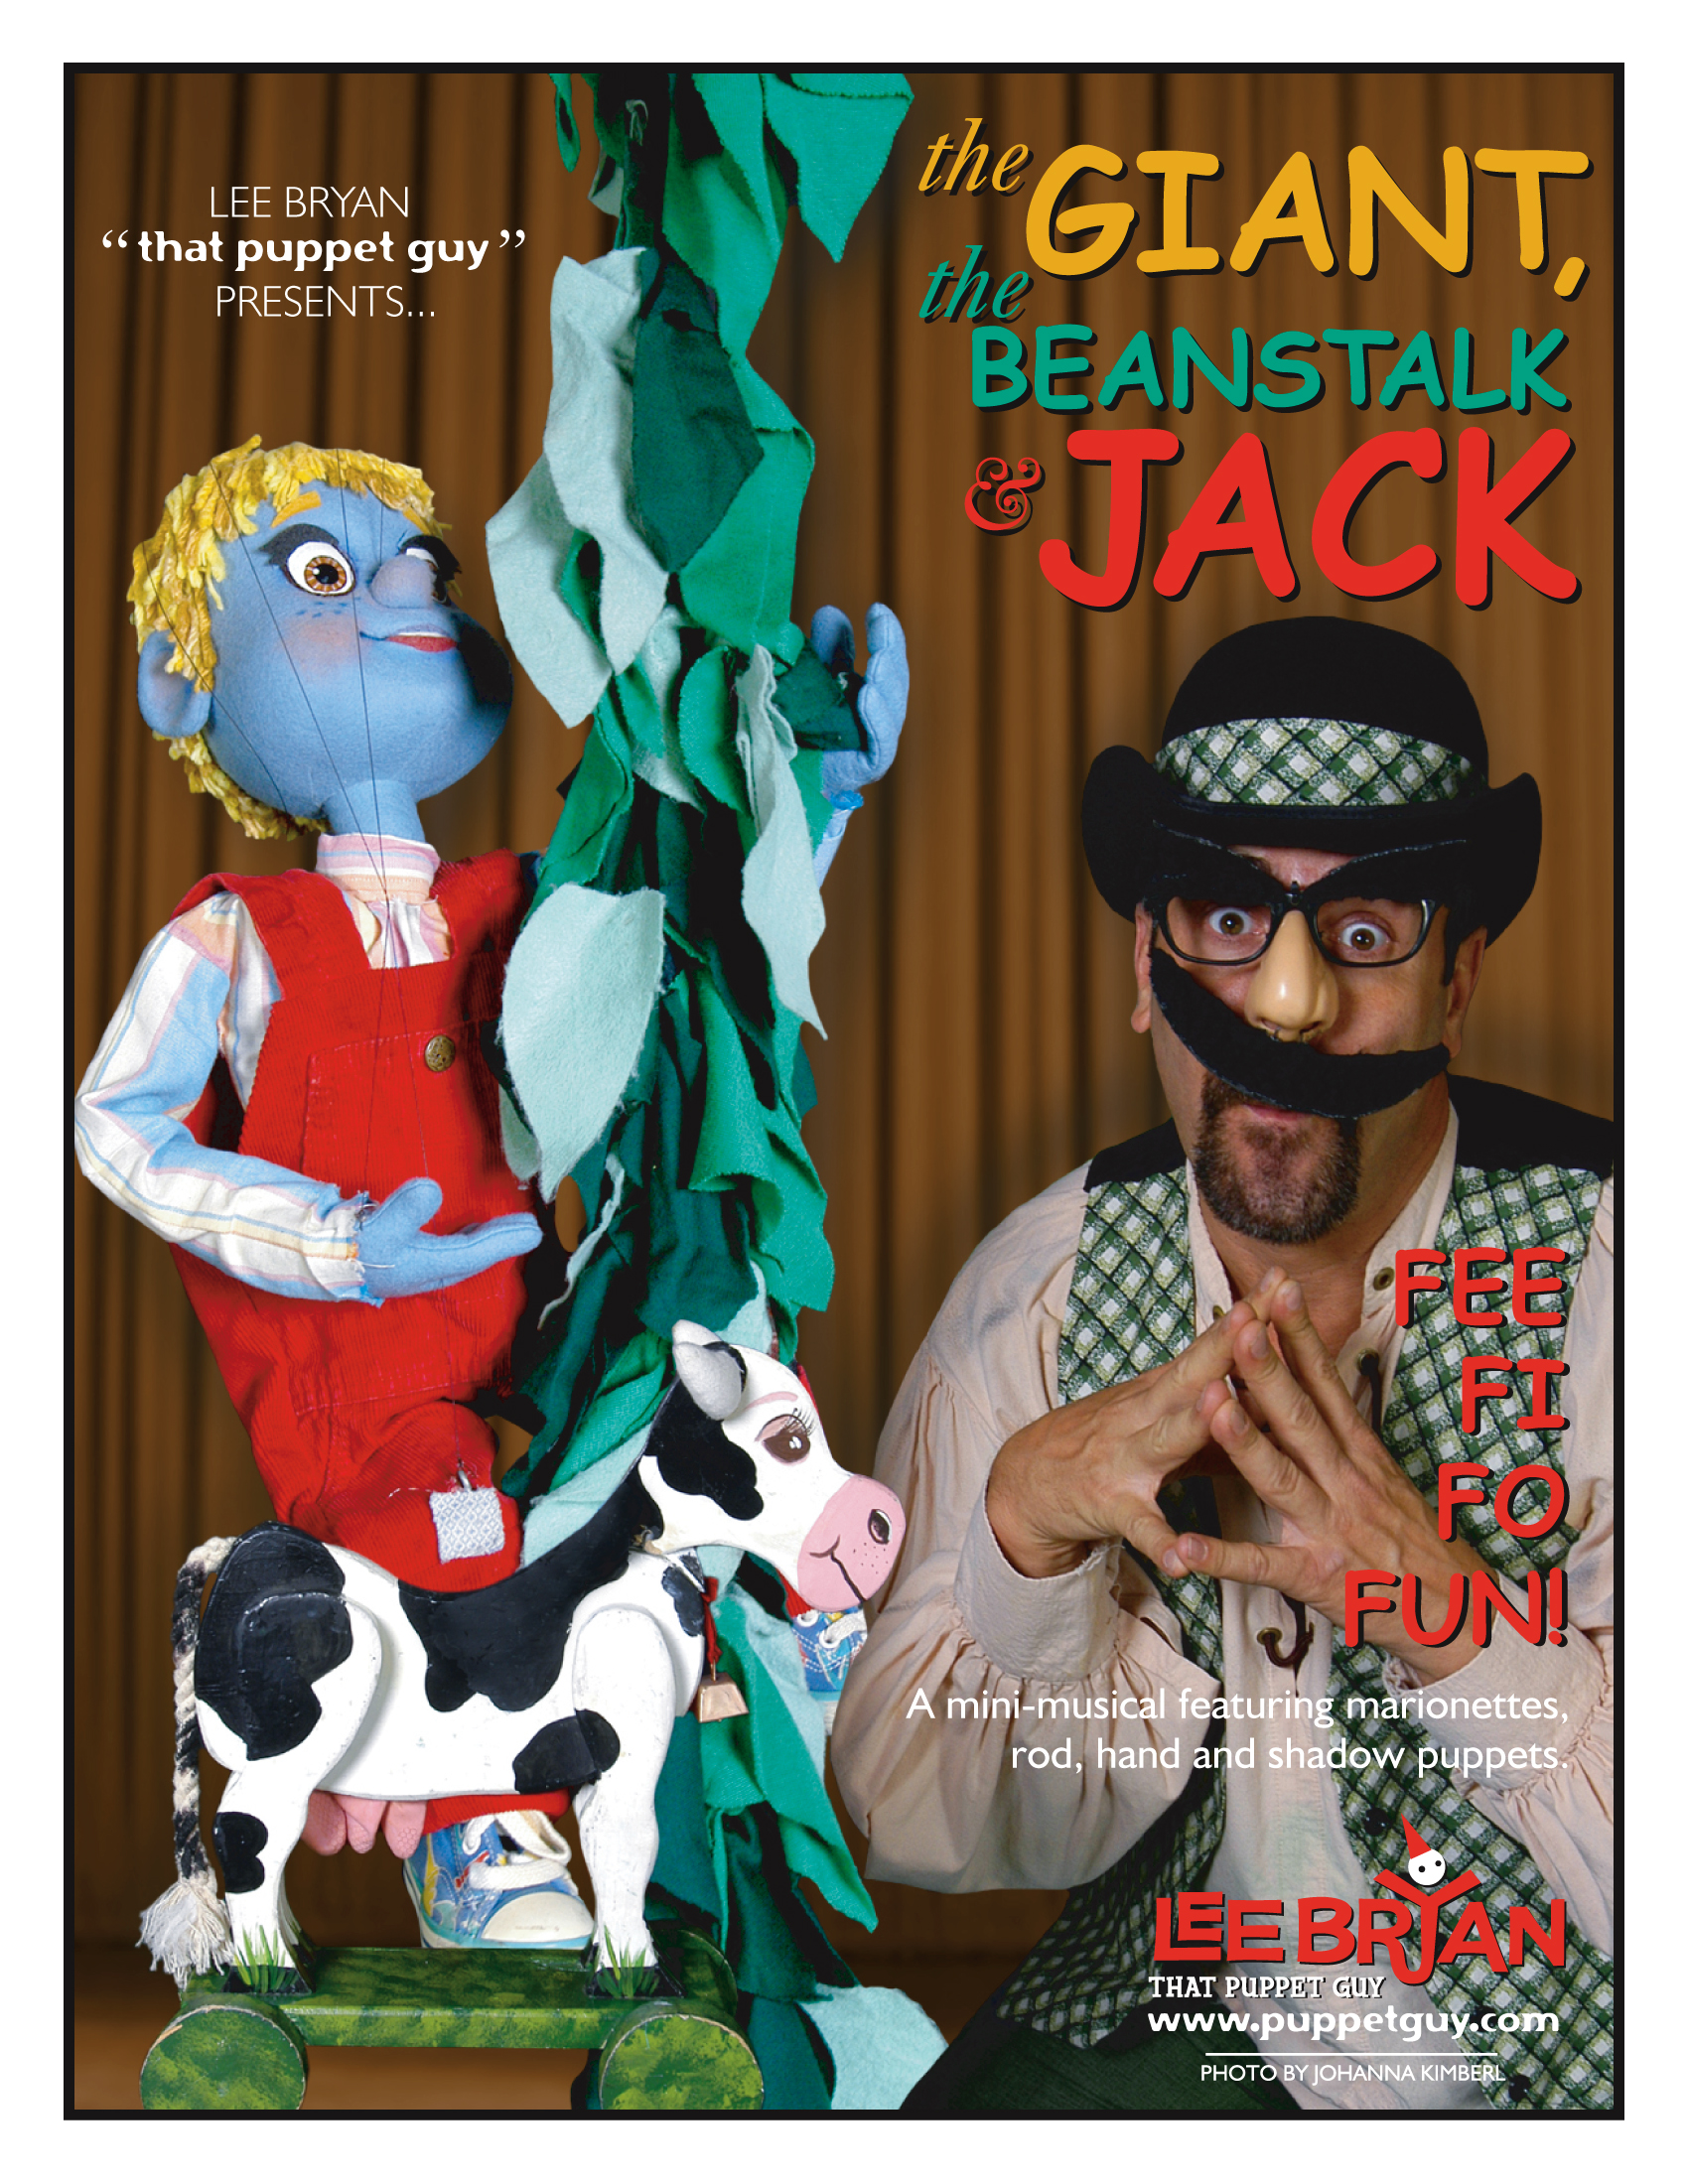 Publicity Slick: The Giant, The Beanstalk & Jack